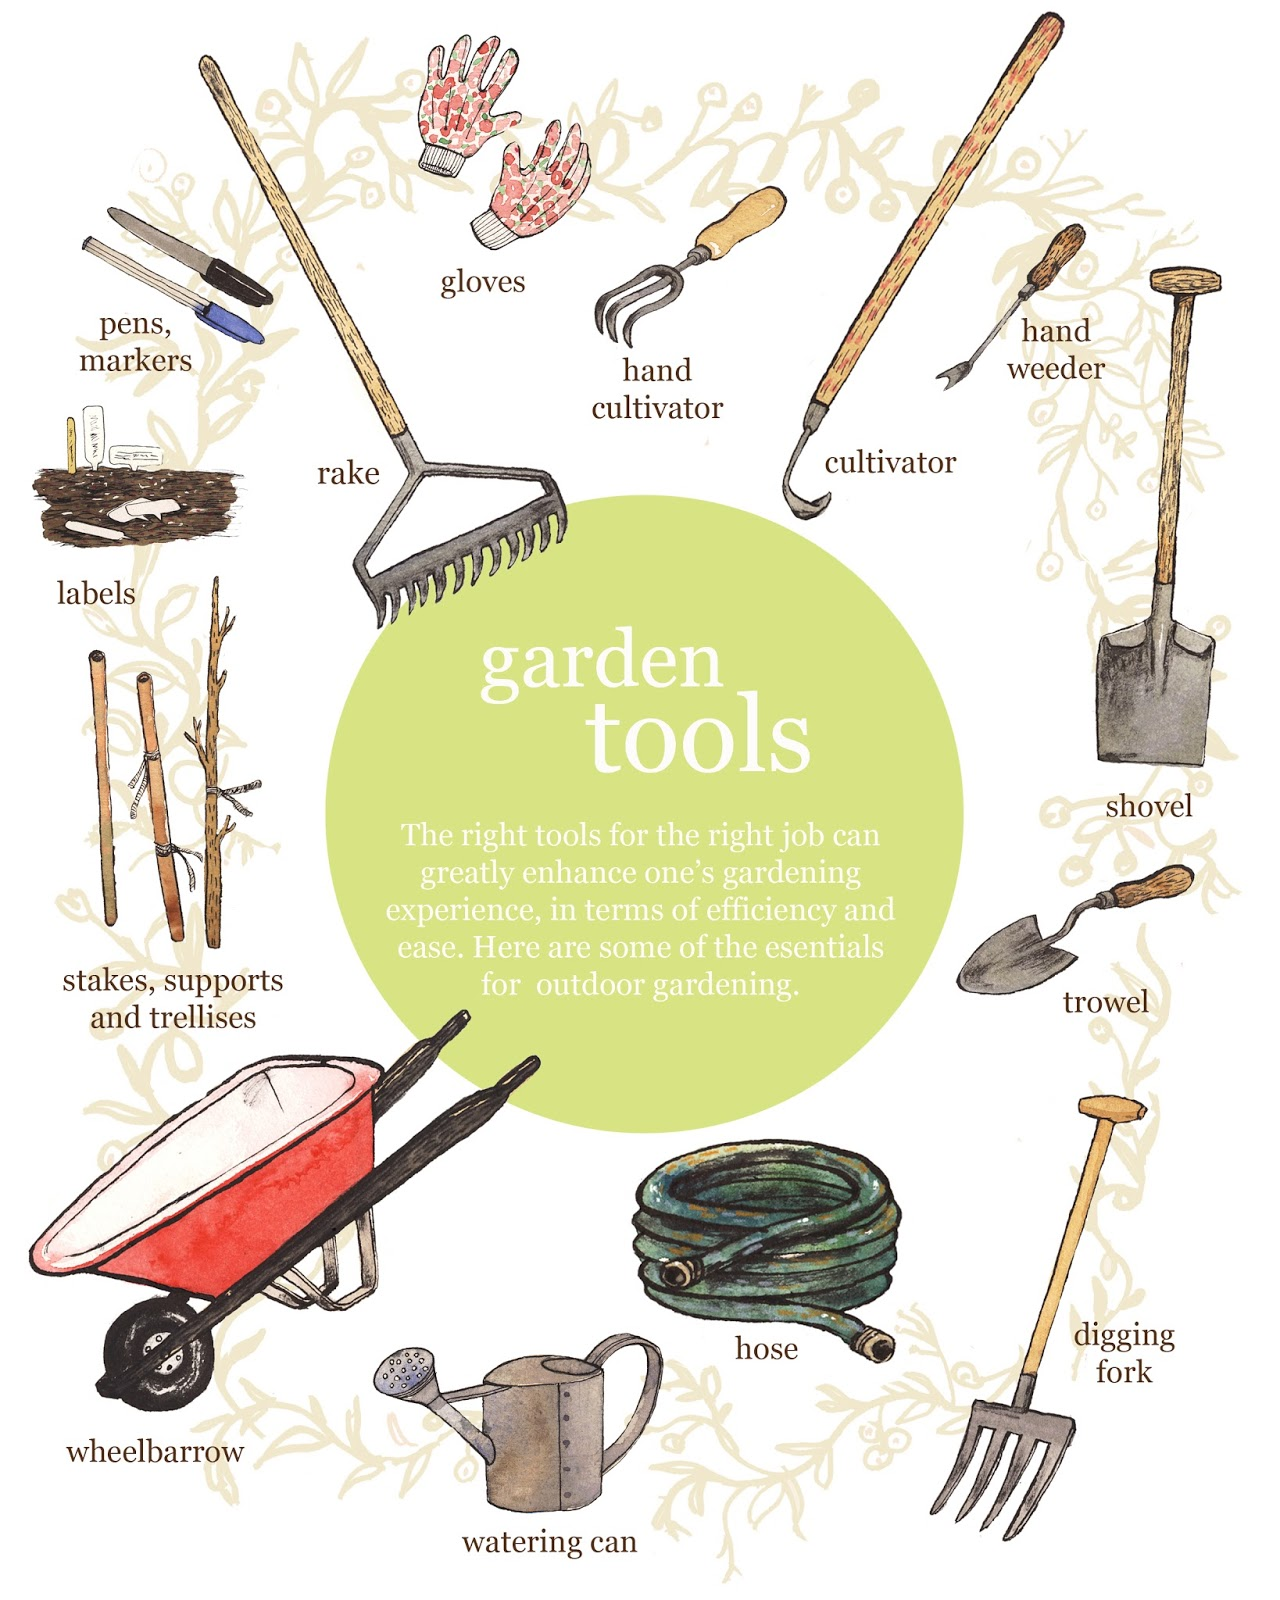 Robin clugston gardening tools and compost advice for Horticulture tools list